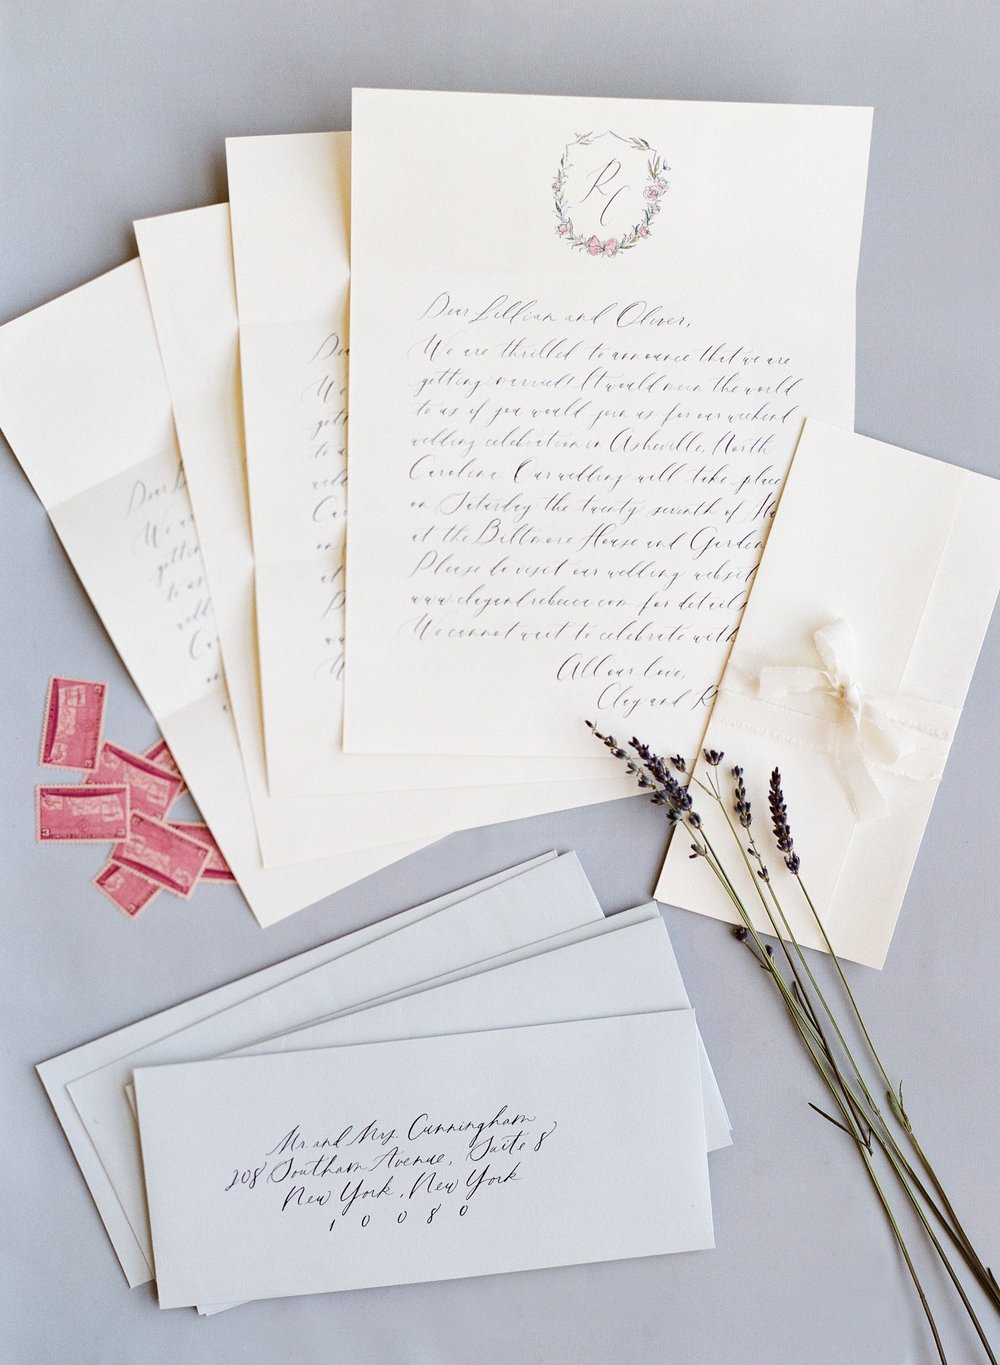 rebecca-clay-wedding-north-carolina-savethedates-103228794.jpg